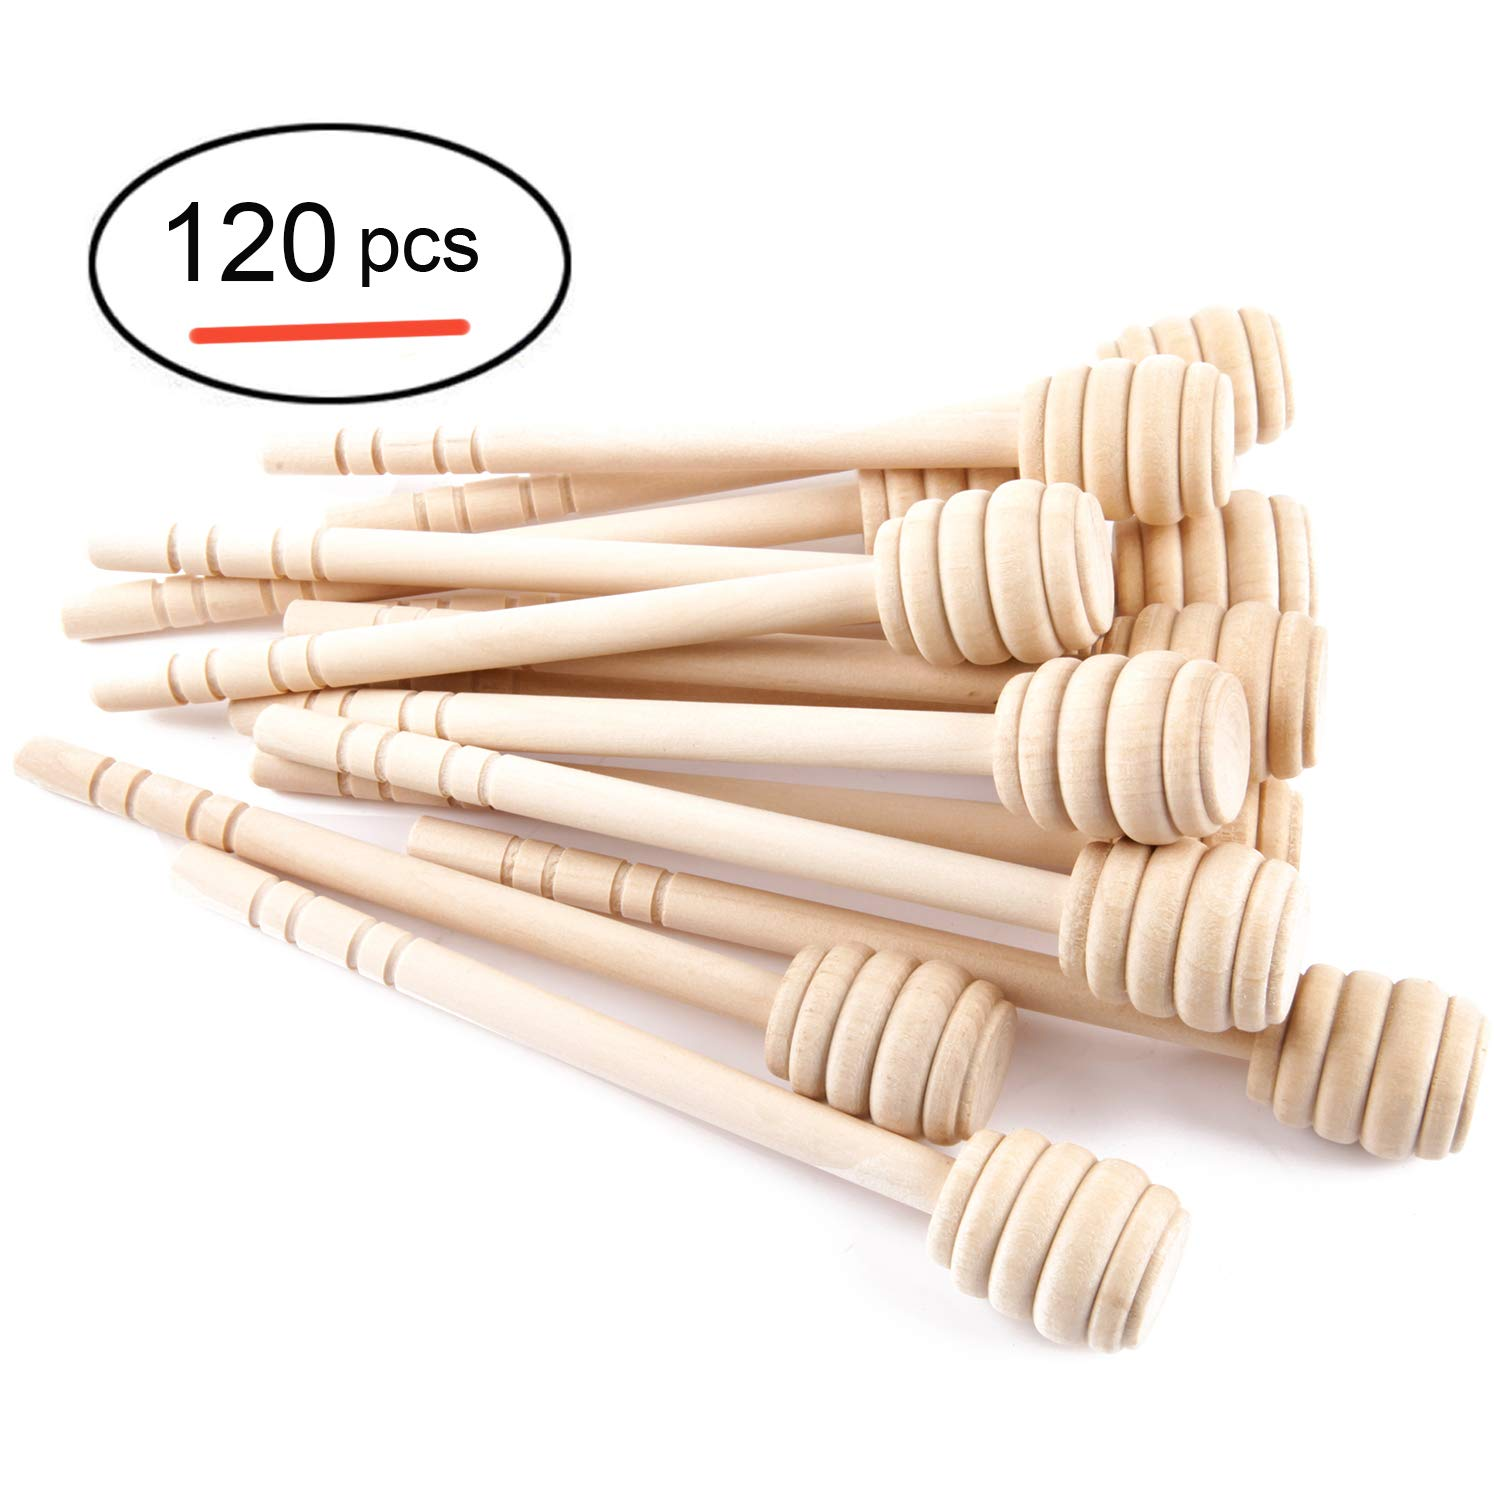 Artcome 120-Piece 6 Inch Wood Honey Dipper Sticks, with Ribbon for Honey Jam Jar Dispense, Mini Individually Wrapped, Wedding Party Favors